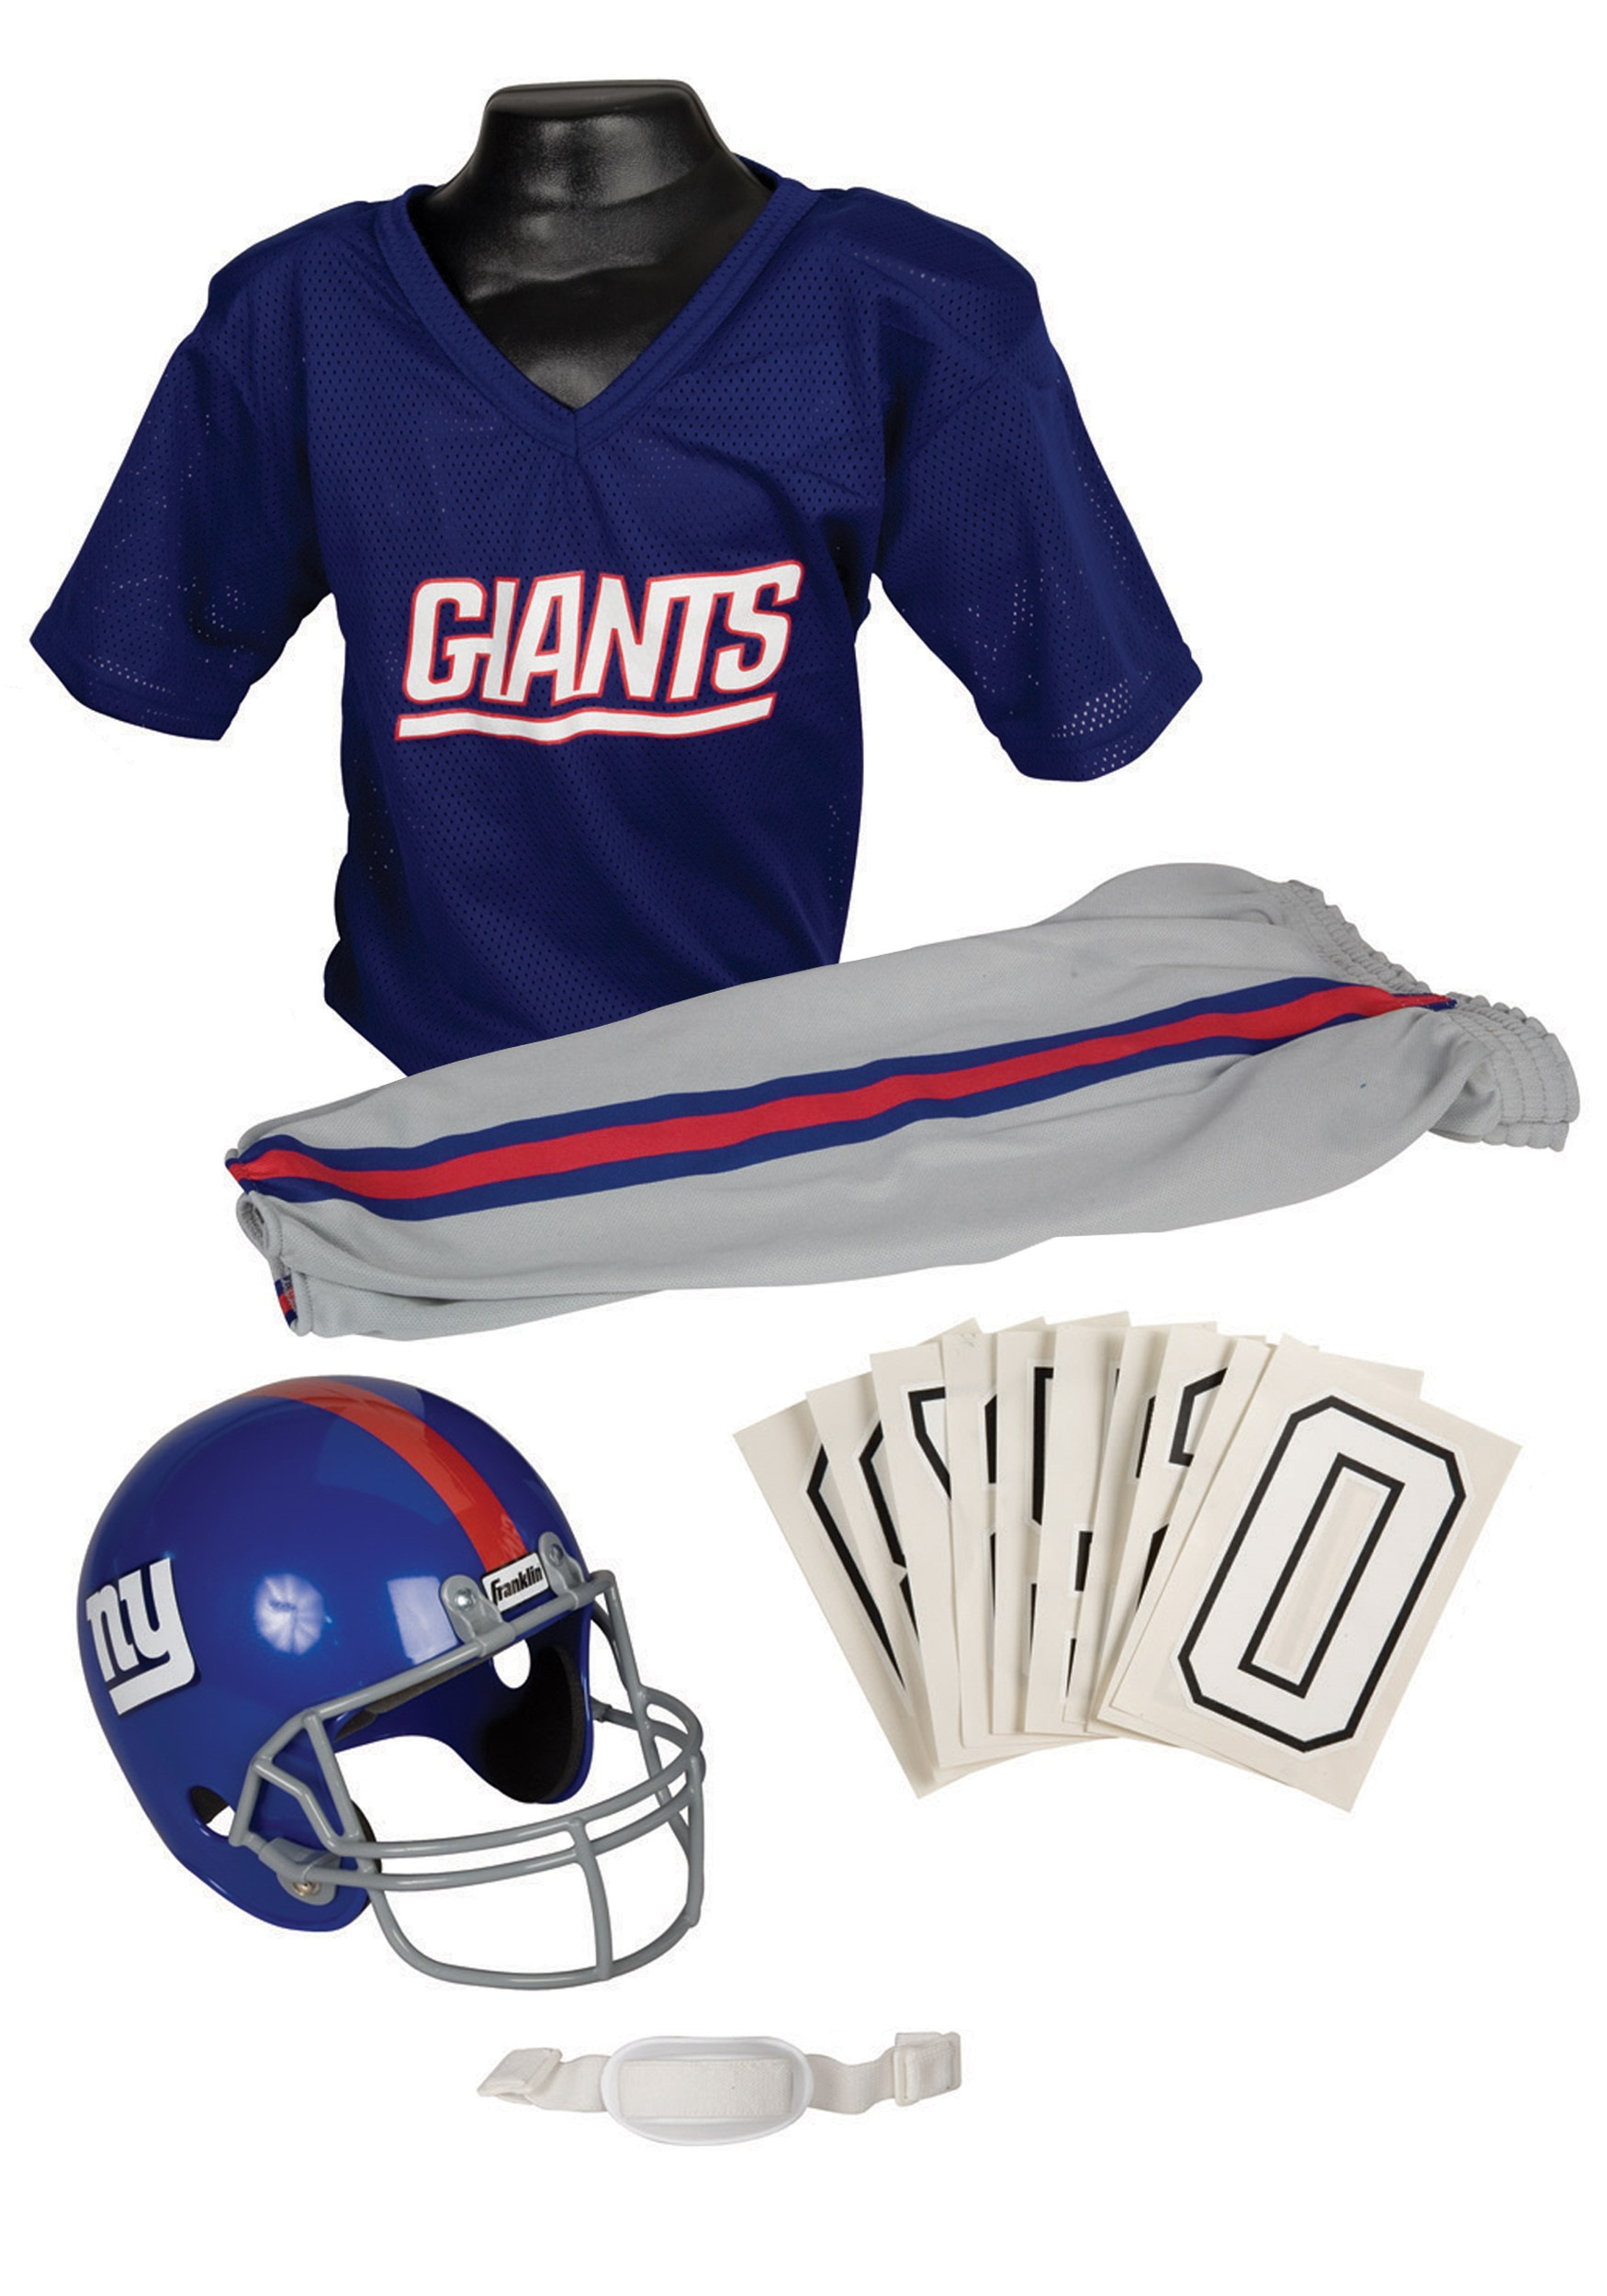 nfl giants uniform costume - Halloween Costume Football